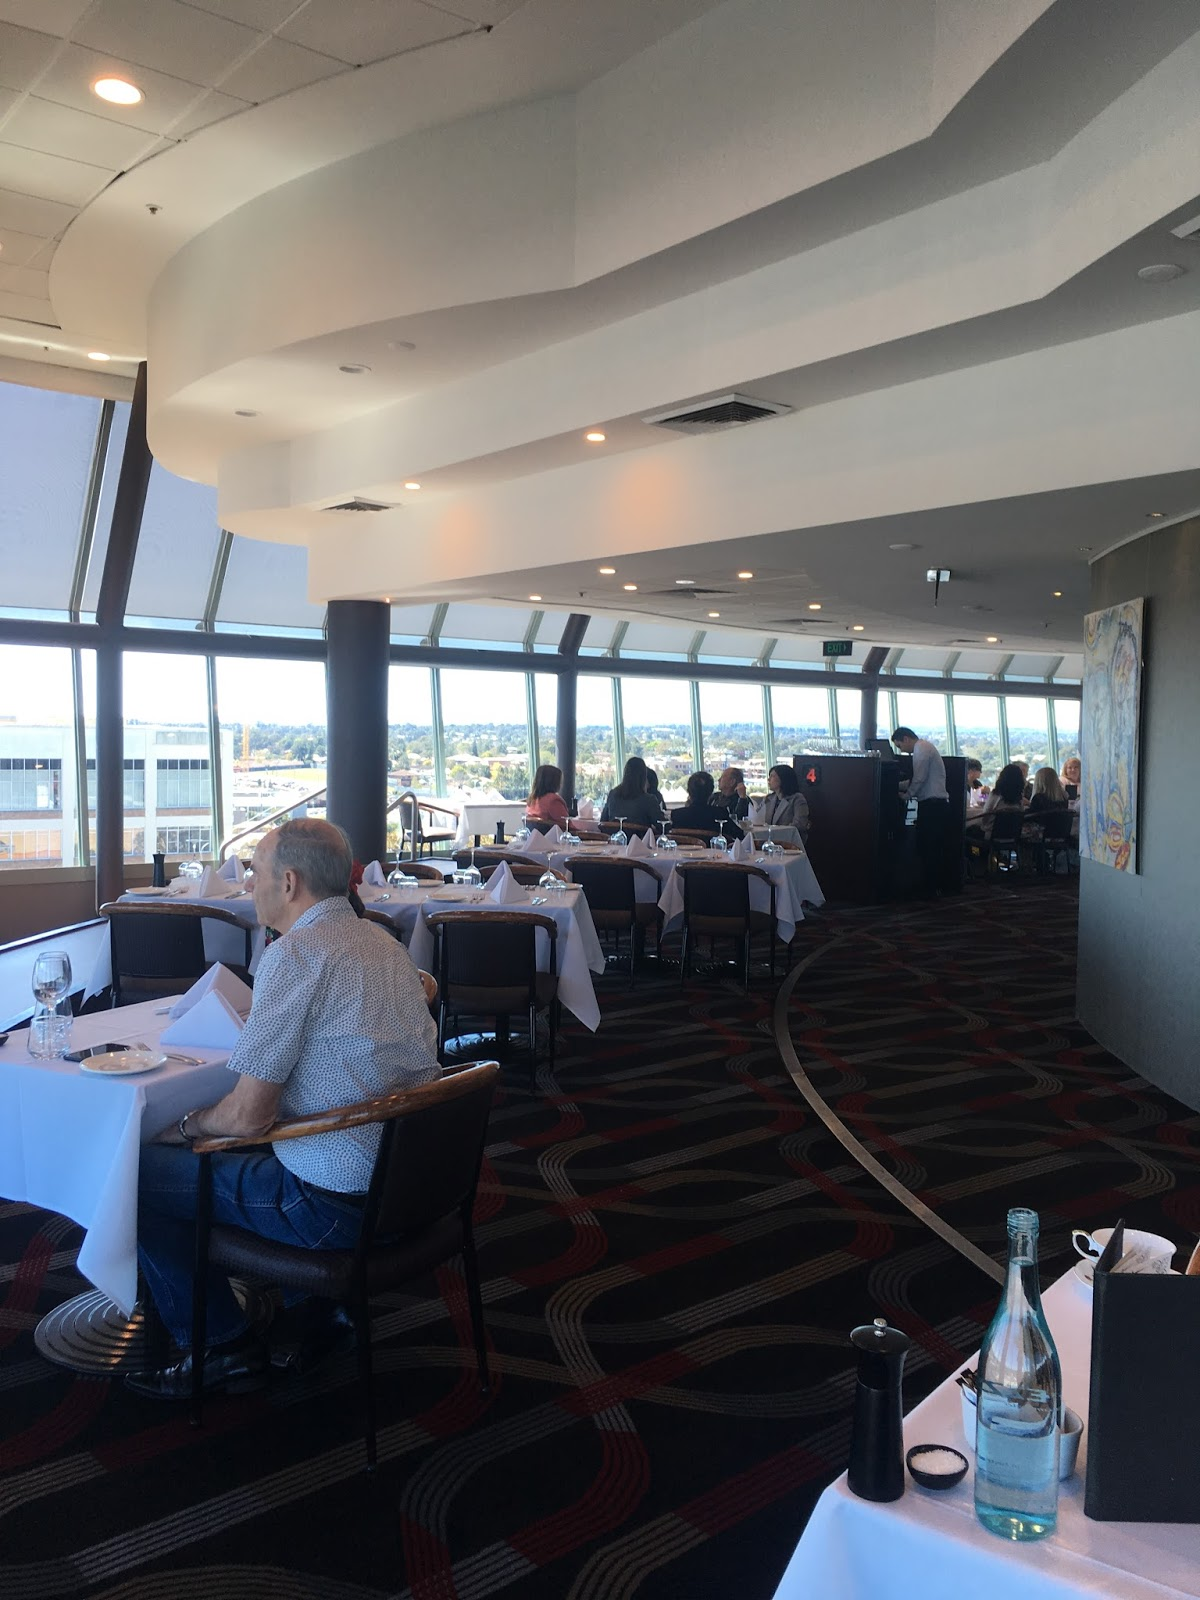 Cucina Revolving Restaurant Weekend Food Escapes Cucina Locale Revolving Restaurant Blacktown